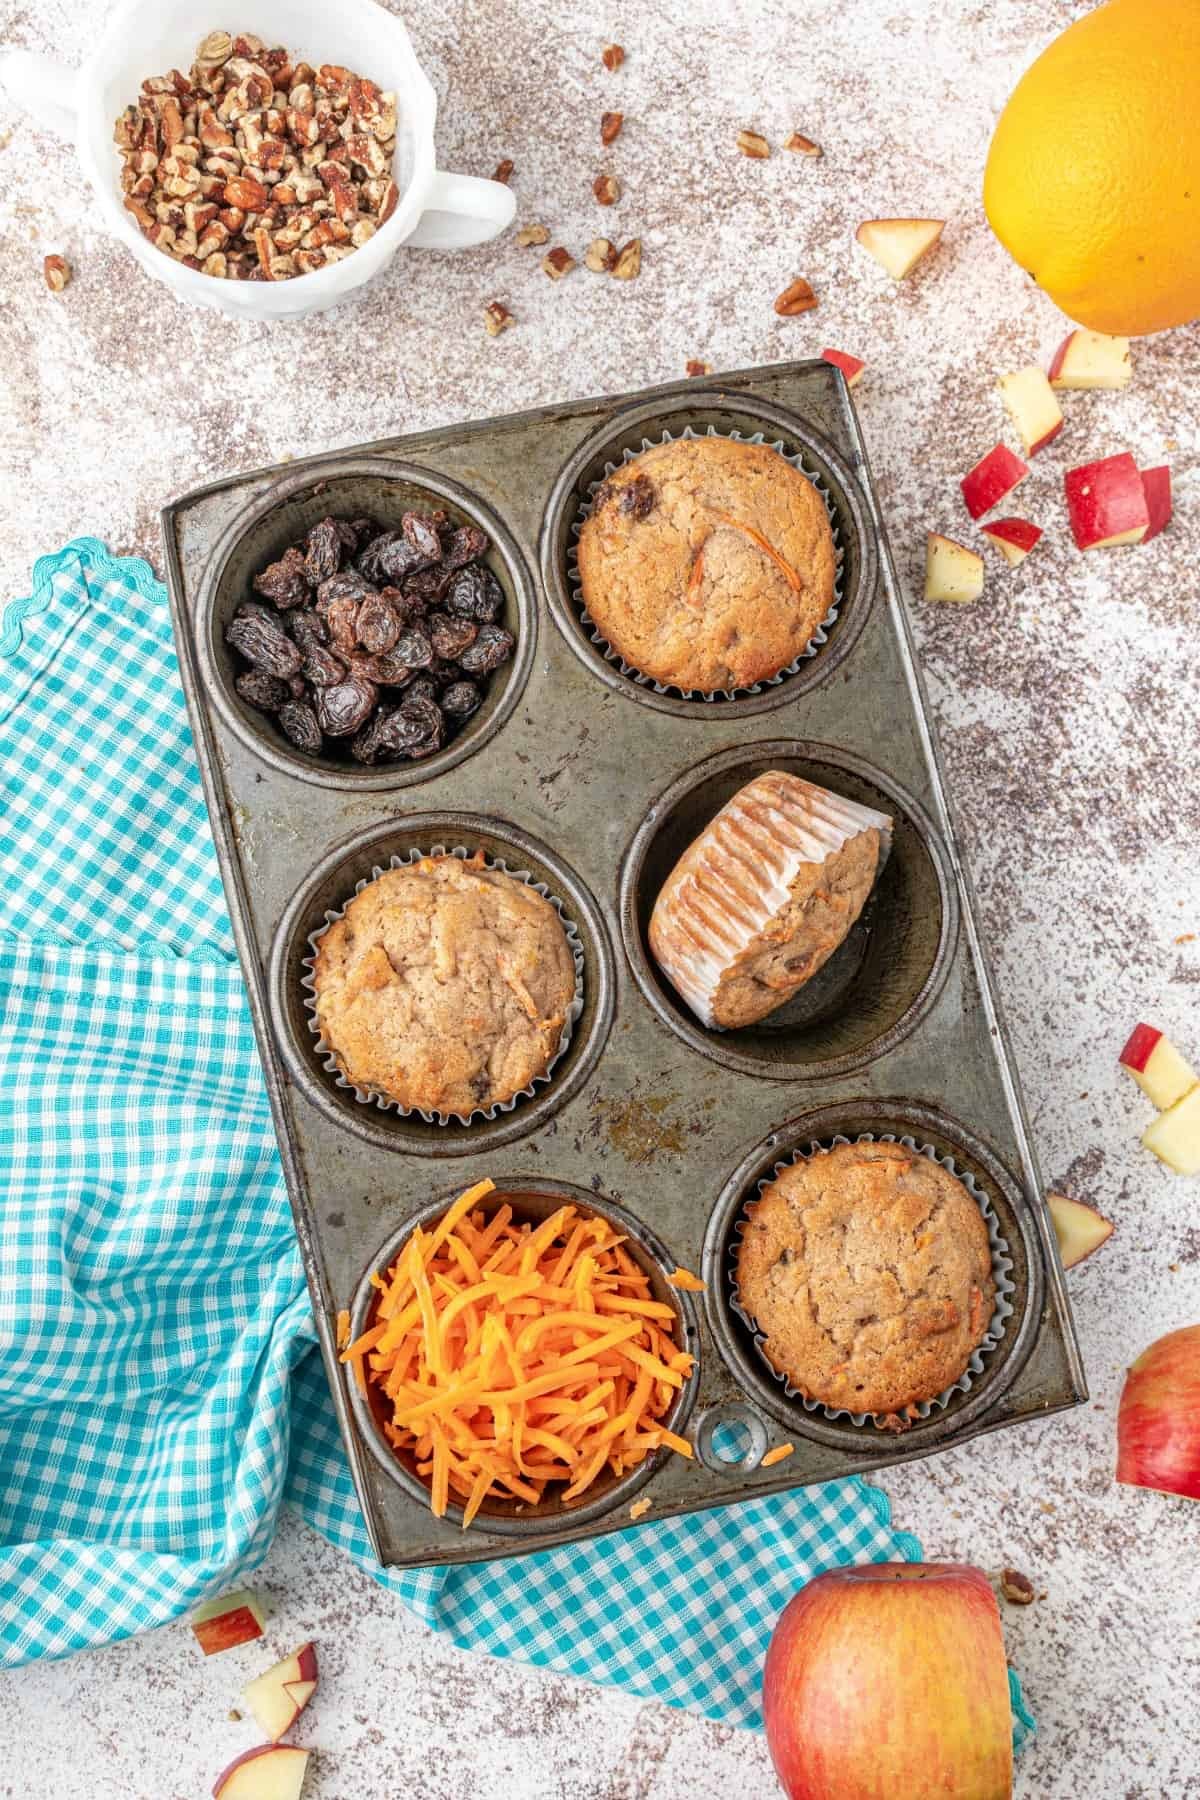 Morning glory muffins styled in a cupcake tin with shredded carrots and raisins.